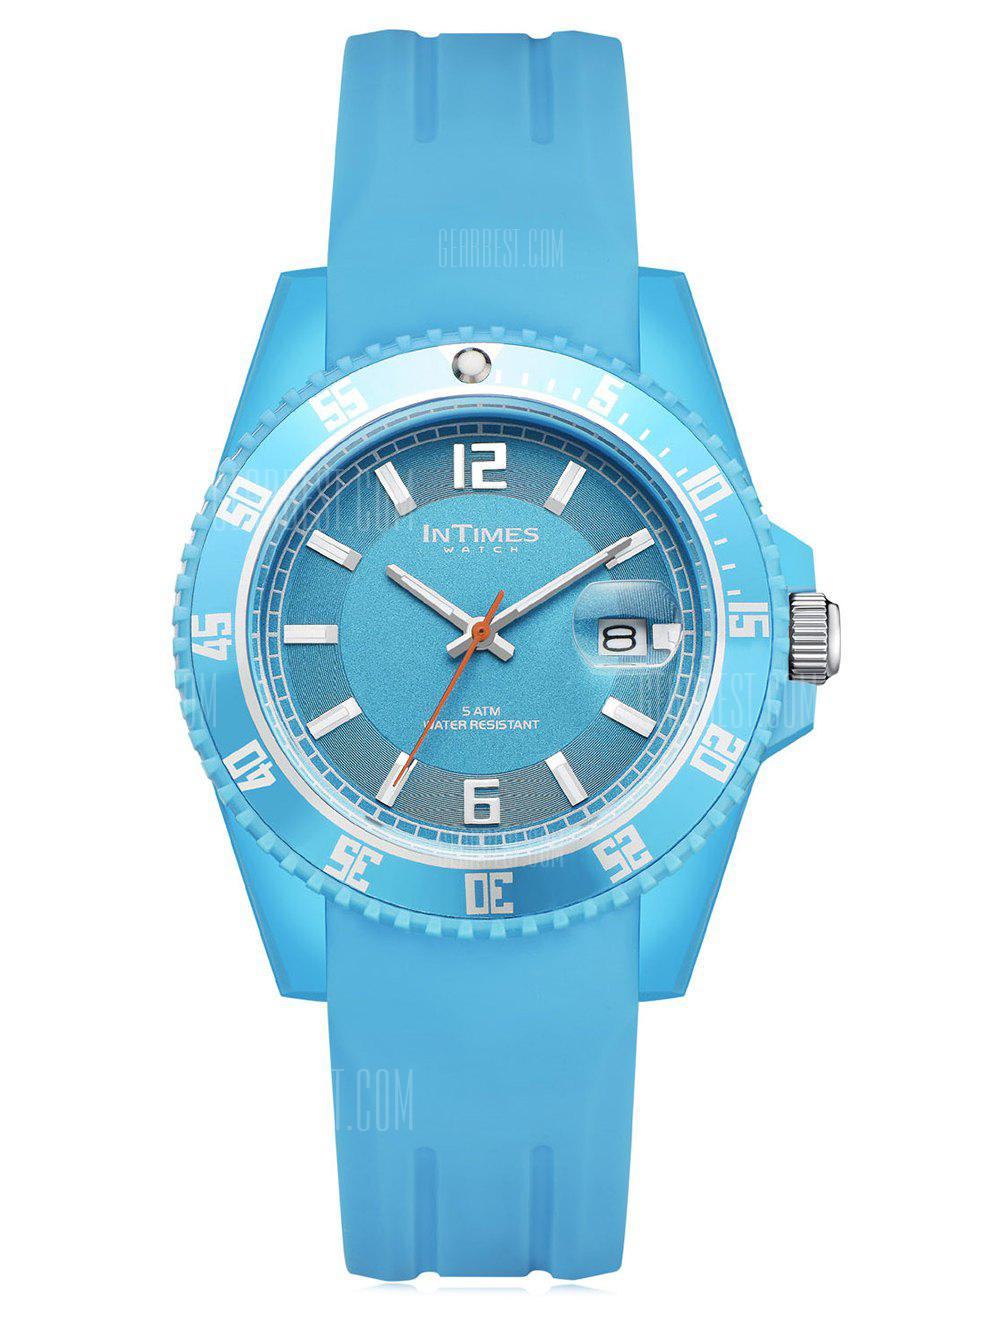 InTimes Plastic Case Silicone Band Wristwatch